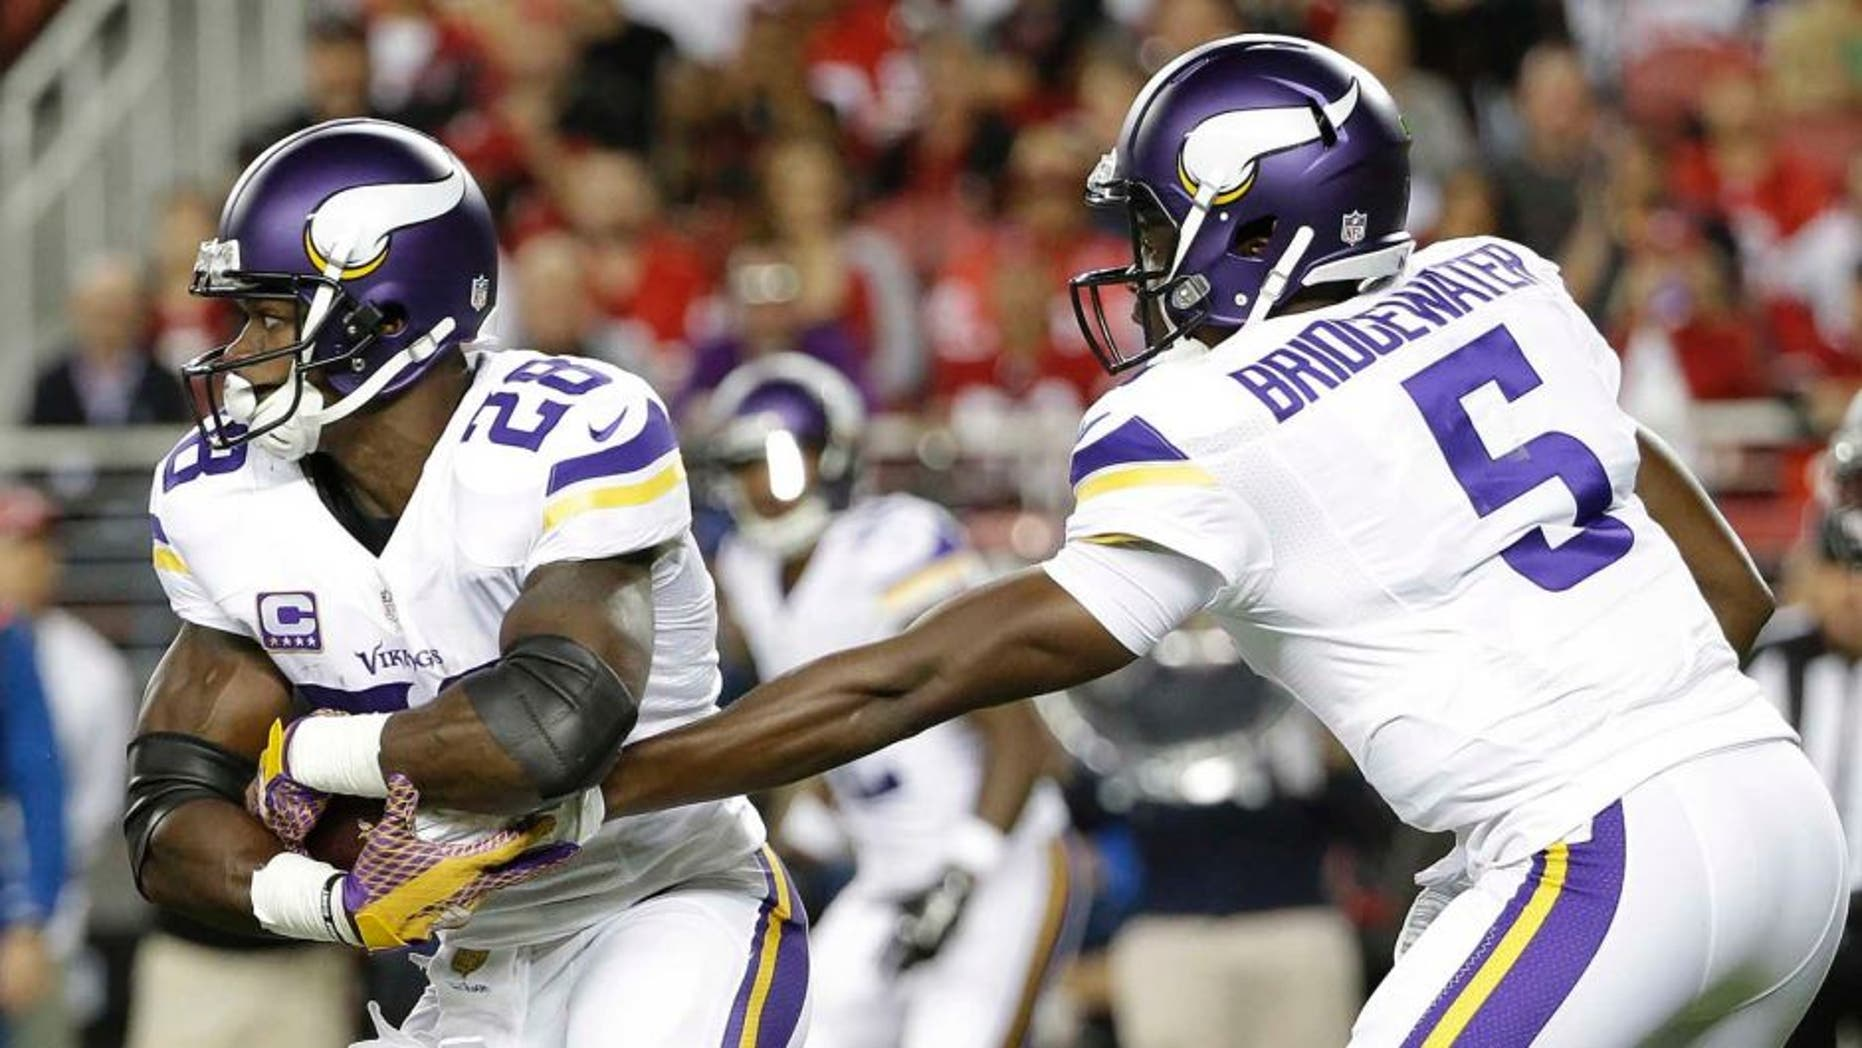 Minnesota Vikings running back Adrian Peterson takes a hand off from quarterback Teddy Bridgewater during the first half of an NFL football game against the San Francisco 49ers in Santa Clara, Calif., Monday, Sept. 14, 2015.